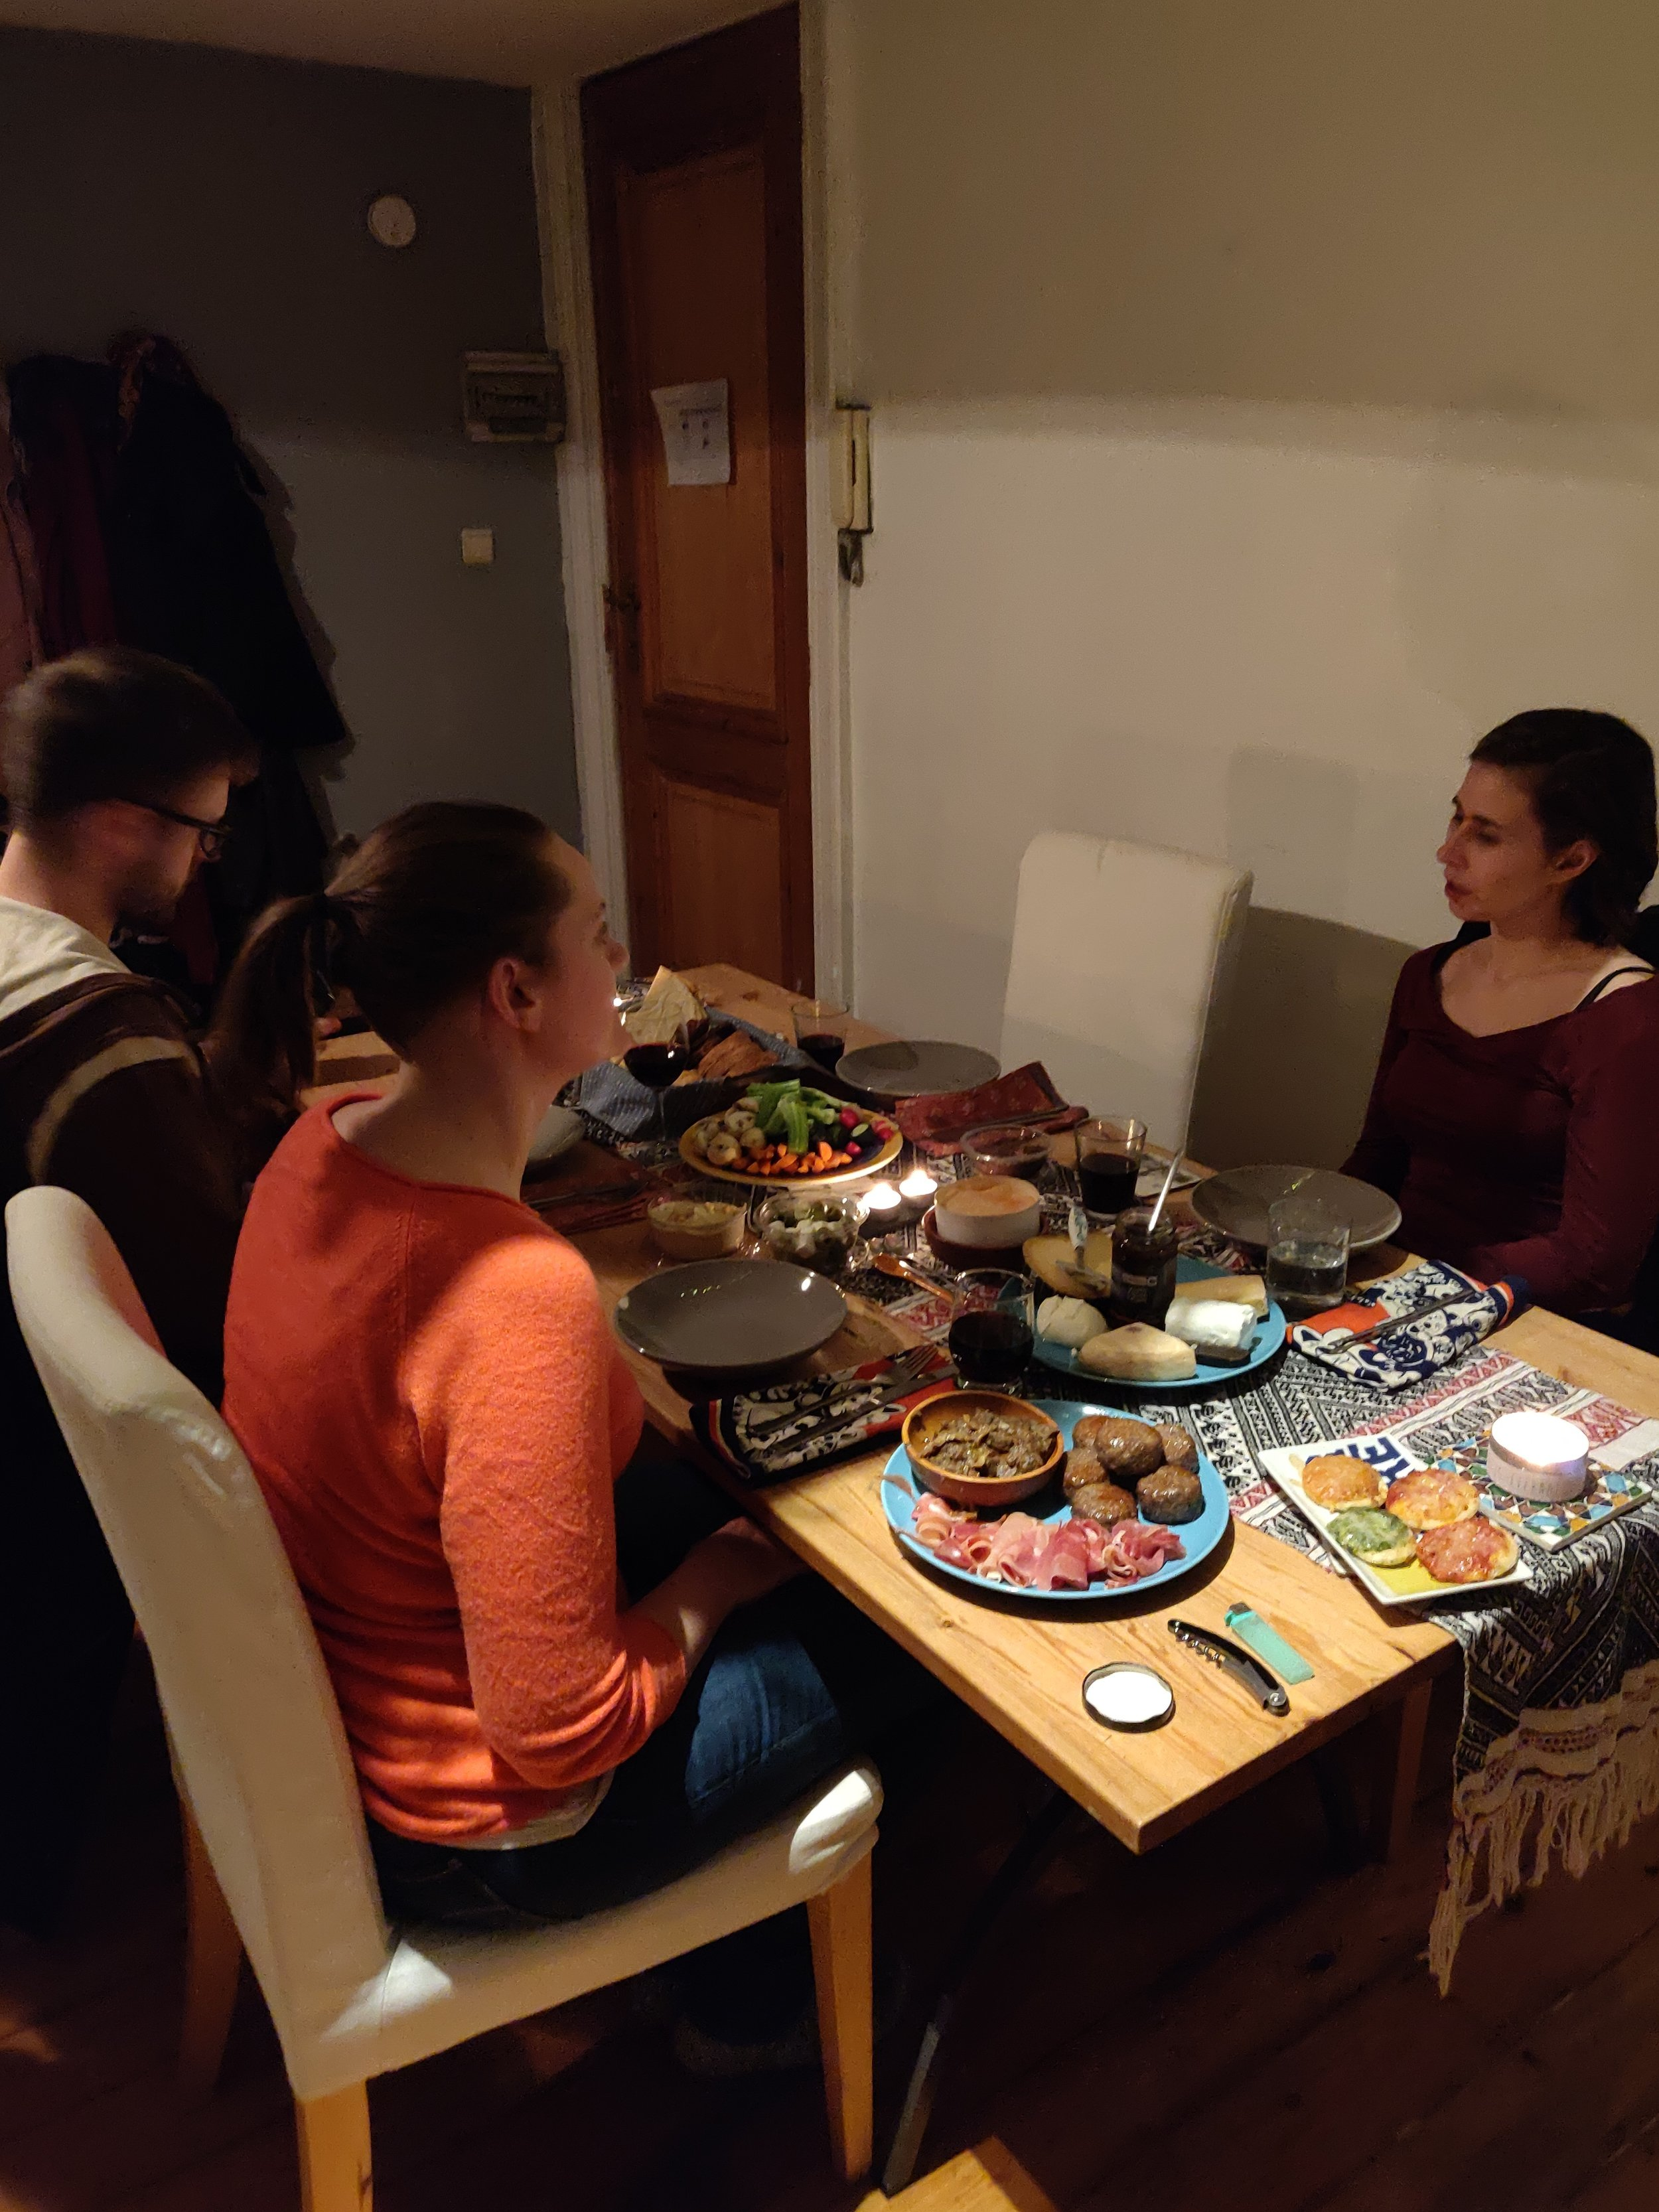 An intimate hygge gathering at home with friends!